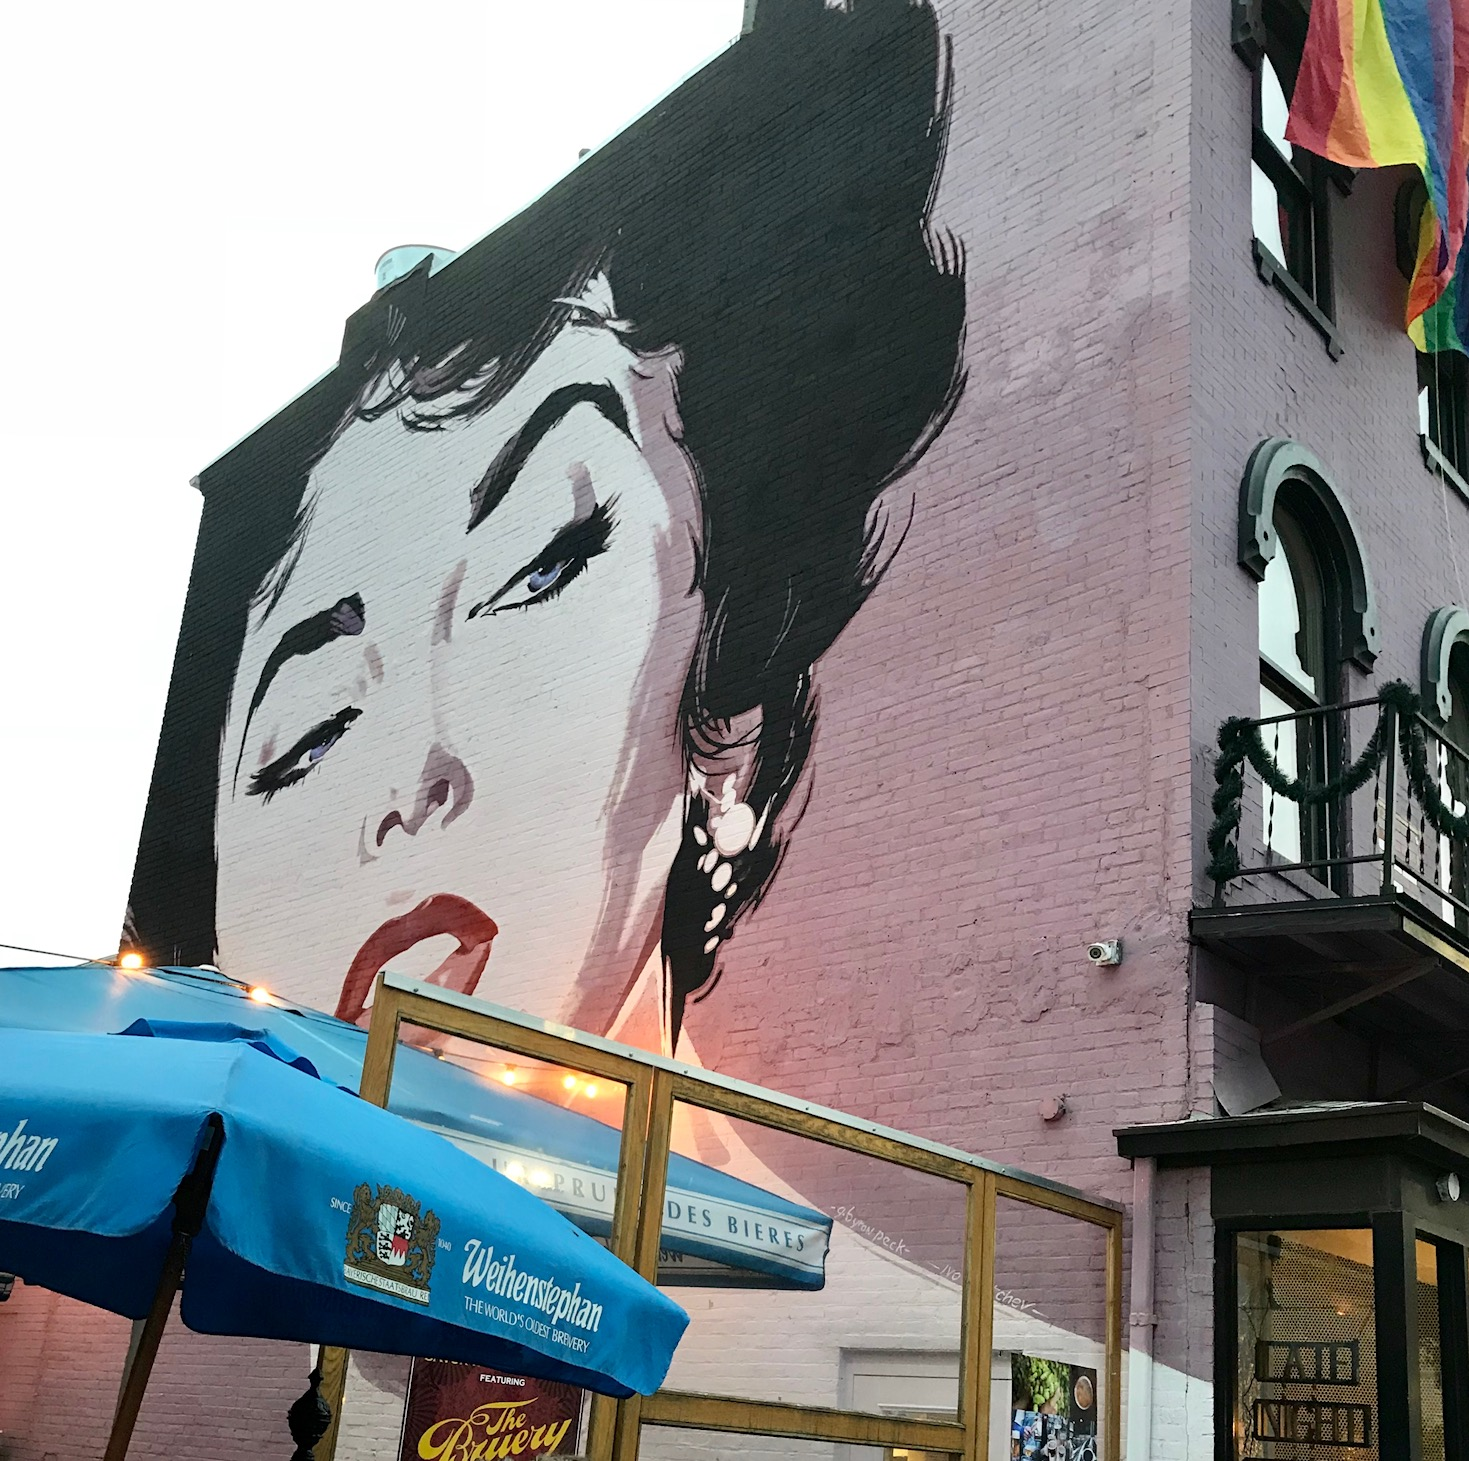 If you find yourself with a balmy evening, head to Dacha, where a wall-spanning portrait of Elizabeth Taylor will welcome you (Image: Eliza Berkon)